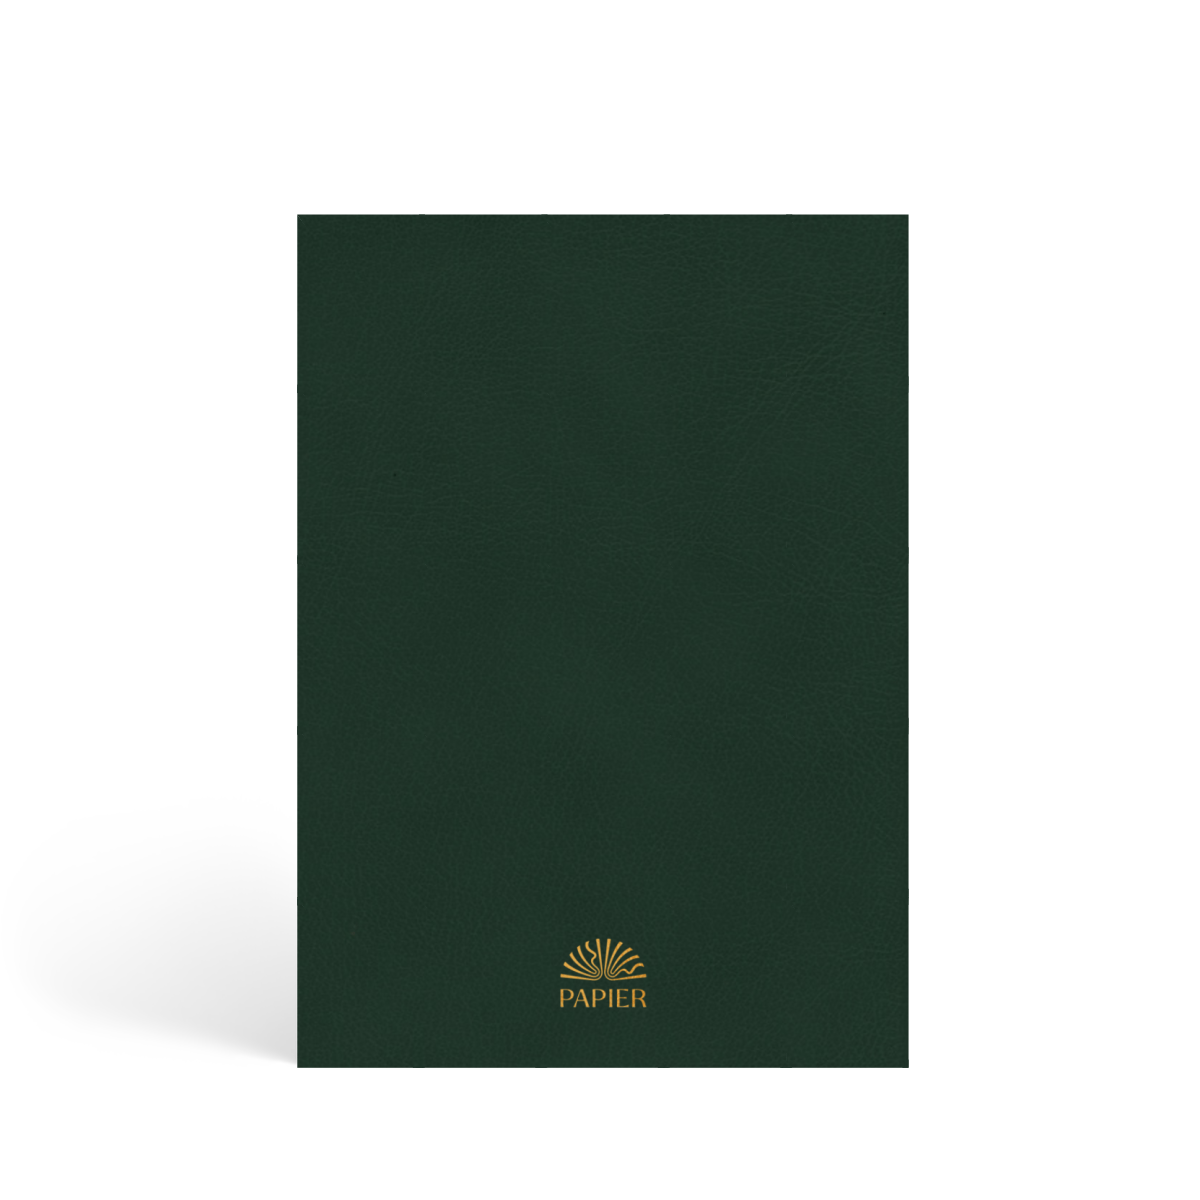 Https%3a%2f%2fwww.papier.com%2fproduct image%2f99157%2f5%2fpine green bee 25257 back 1576670975.png?ixlib=rb 1.1